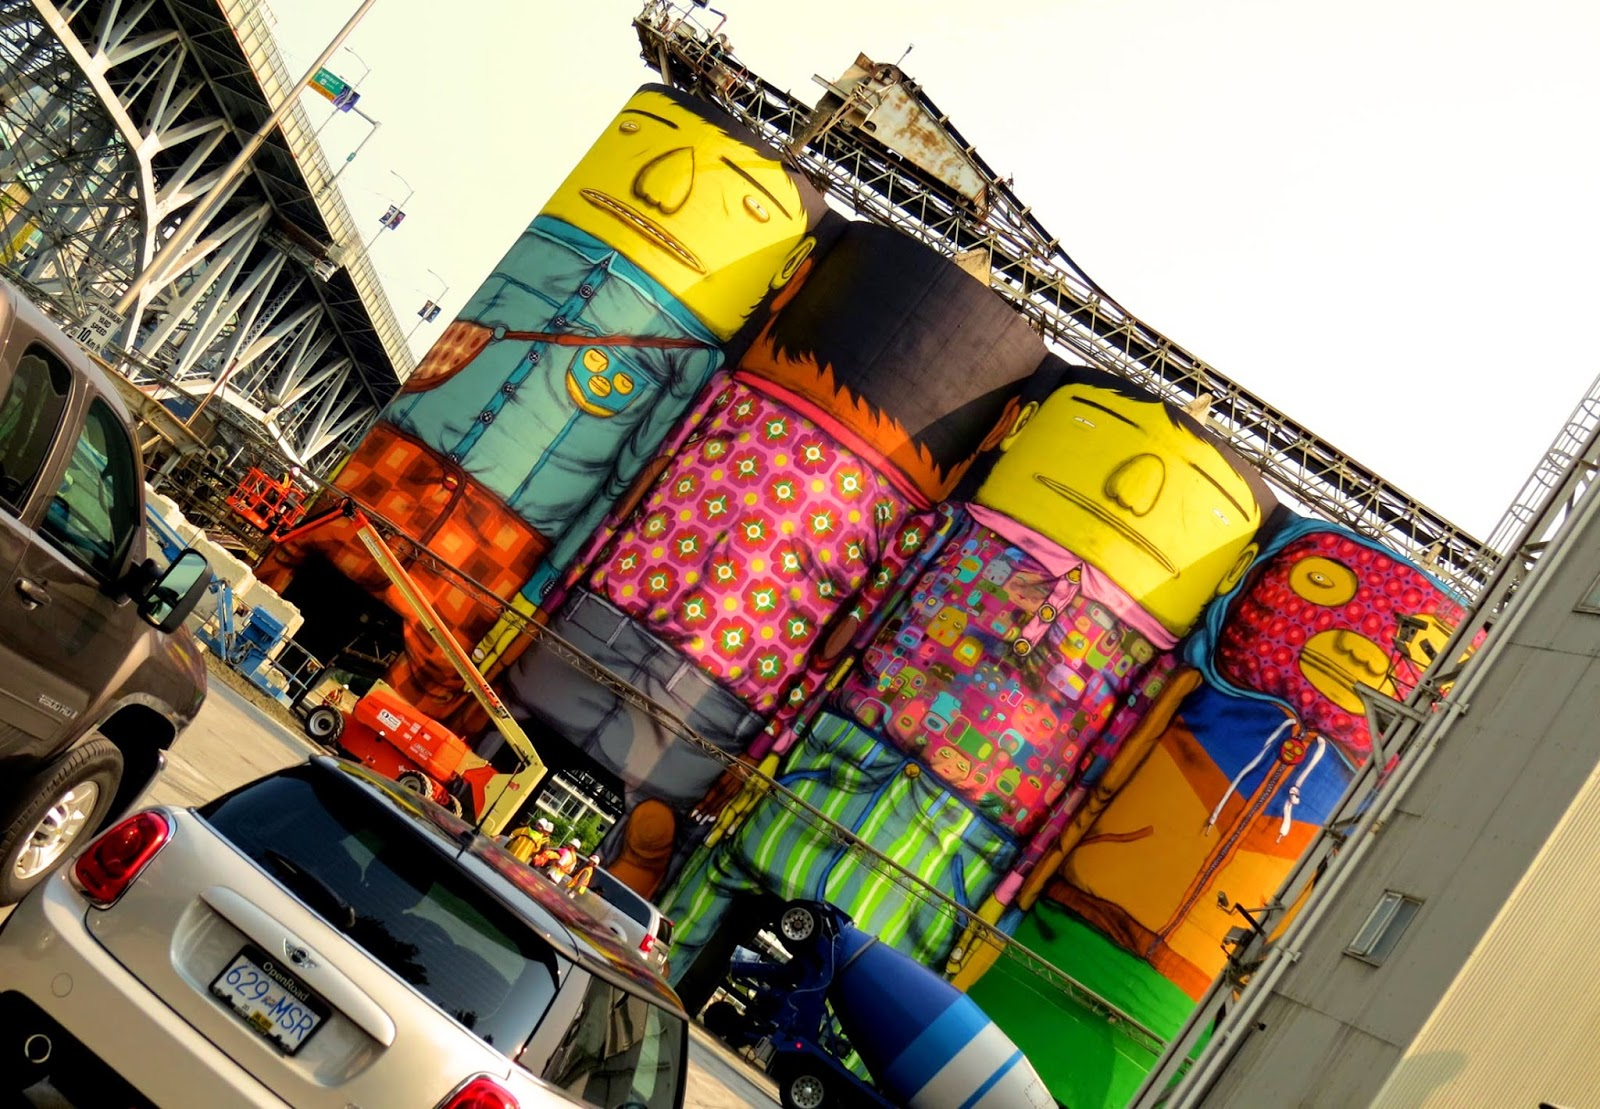 Os Gemeos Work In Progress - Vancouver, Canada (Part II)